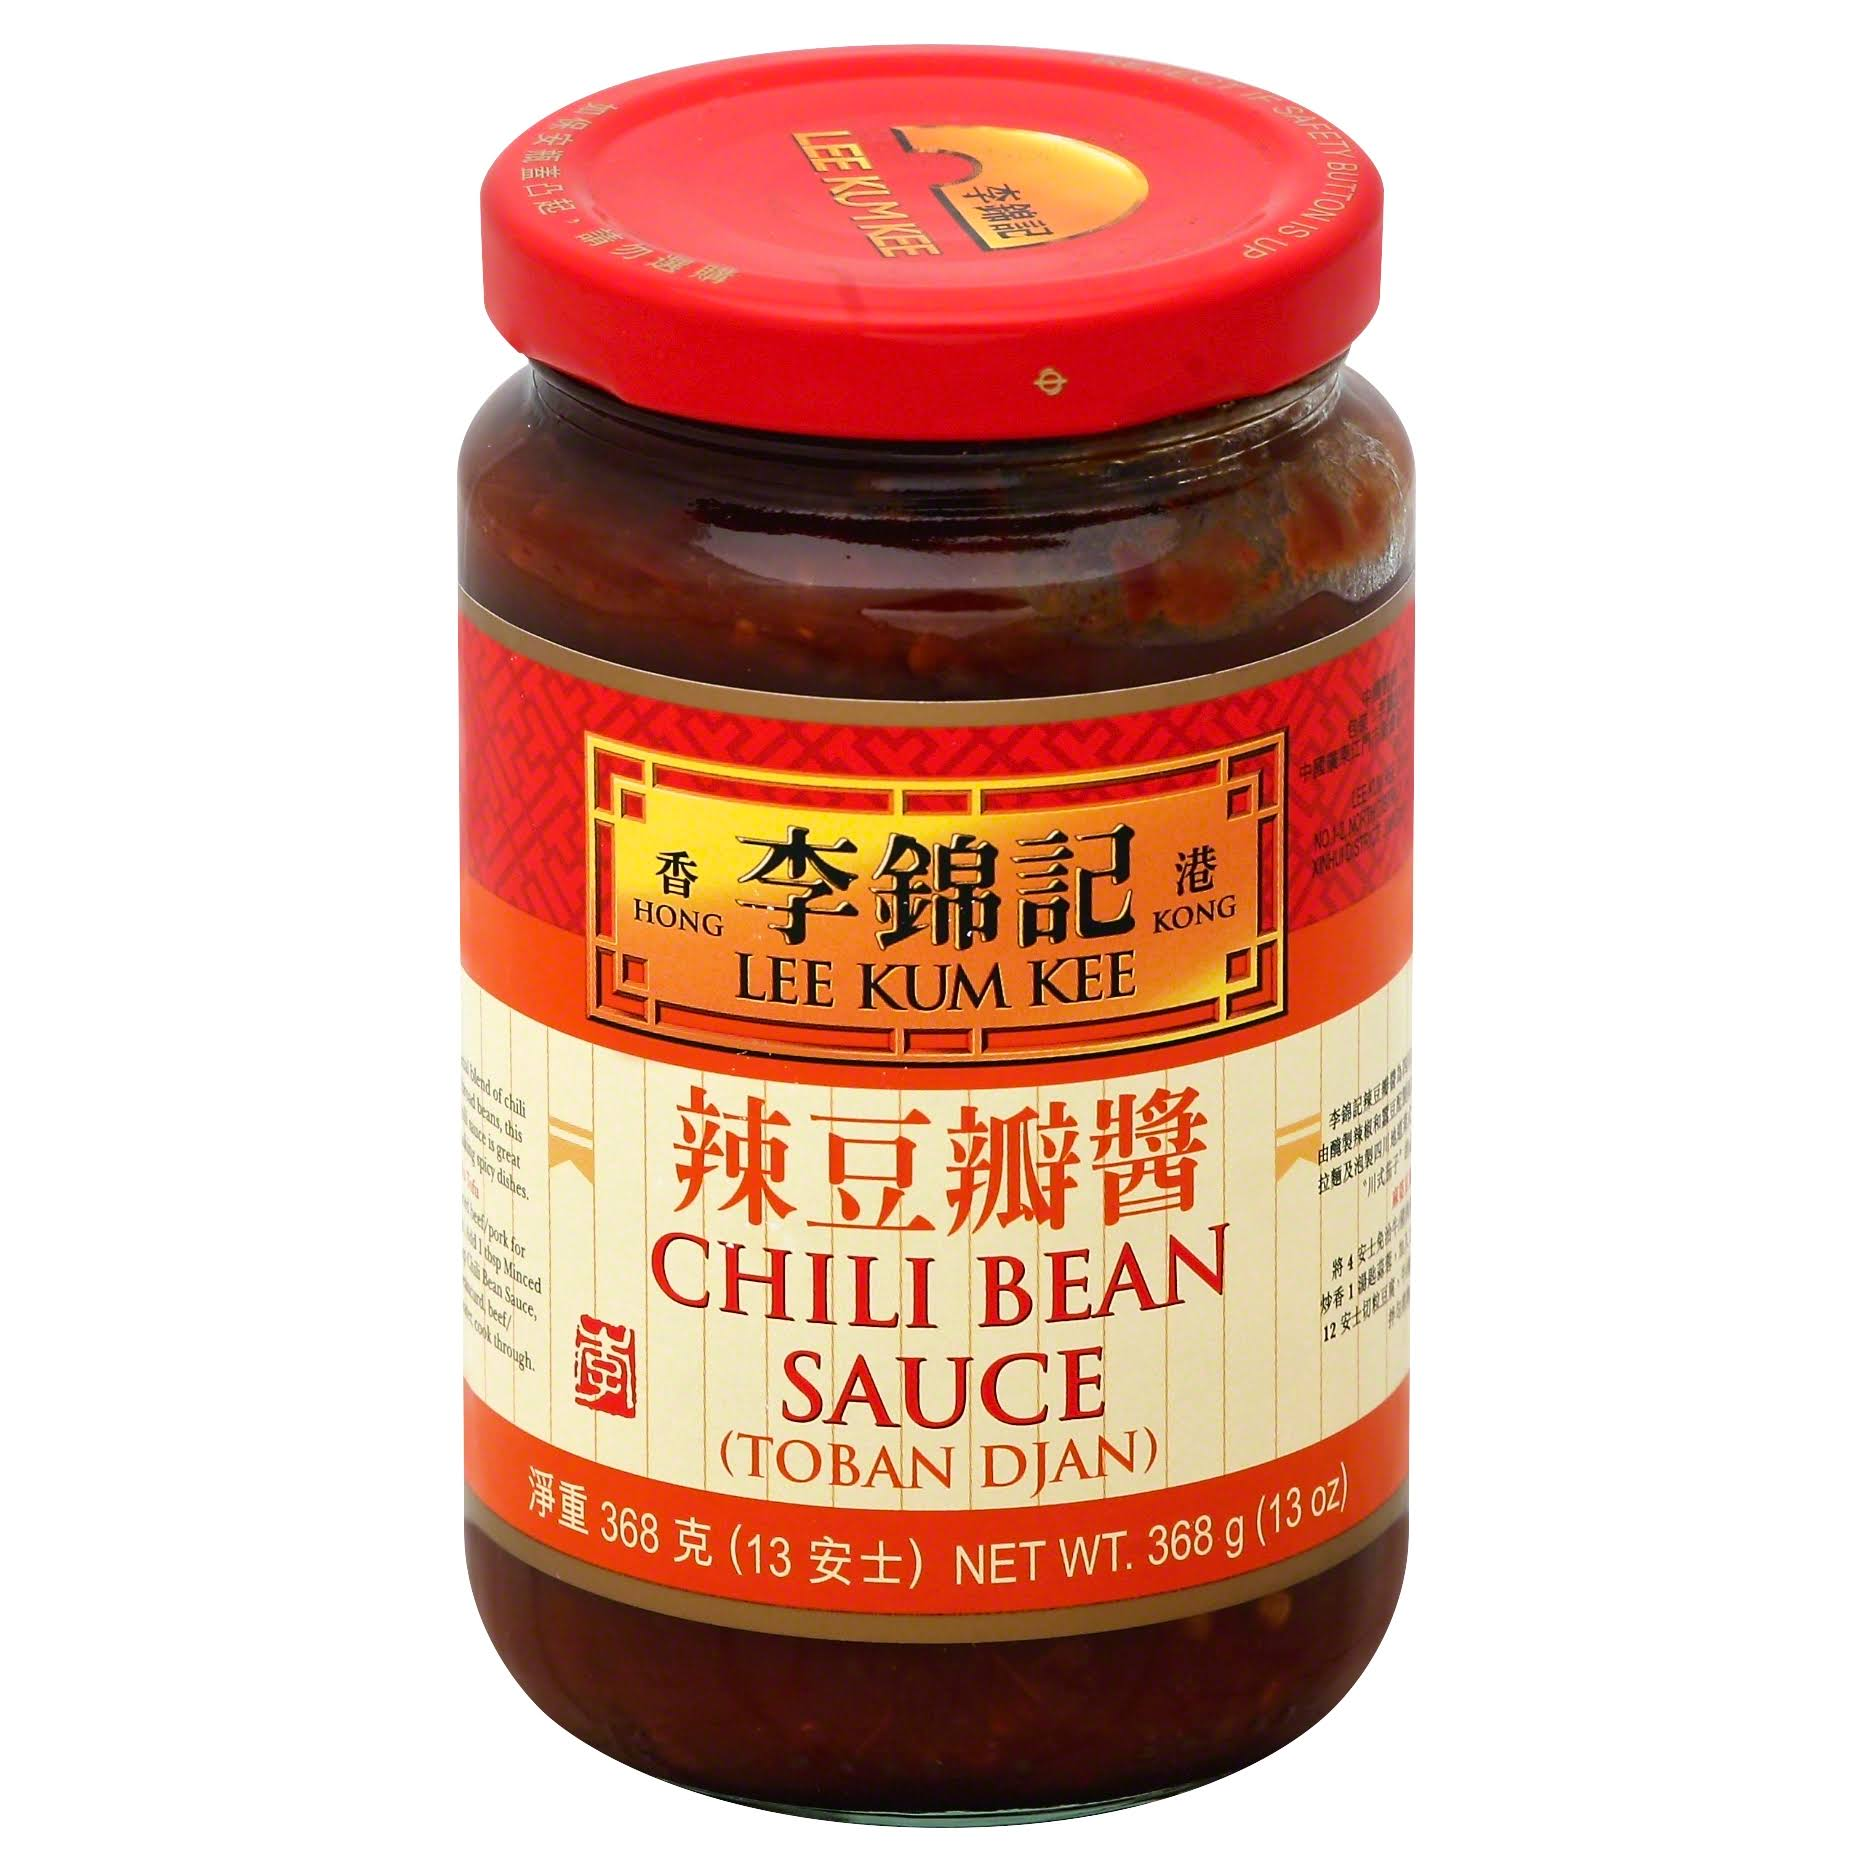 Lee Kum Kee Chili Bean Sauce - 368g